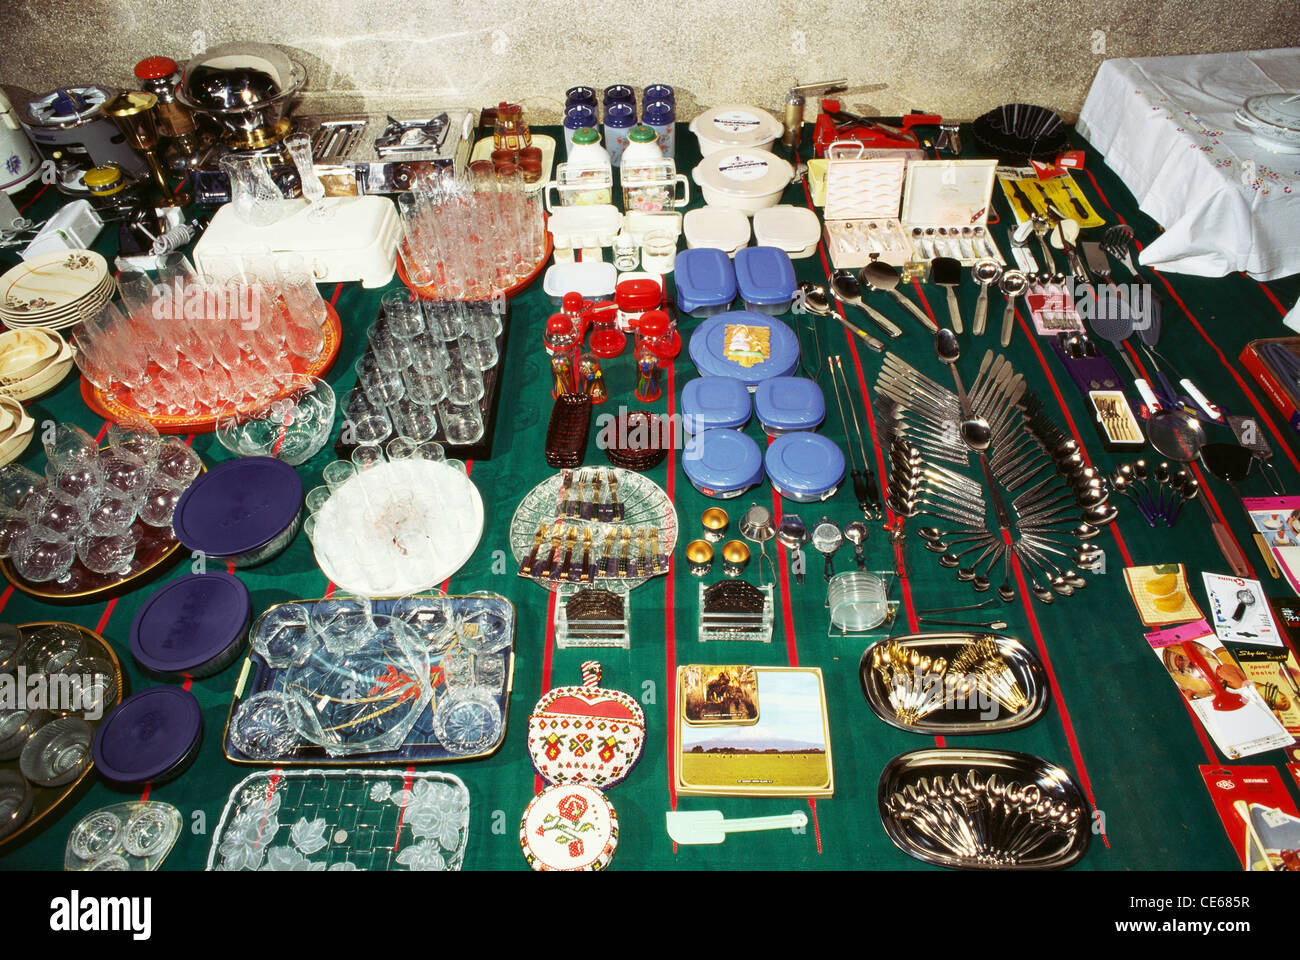 Wedding Gifts To India: Display Of Wedding Gifts To Bride Dowry By Her Parents In